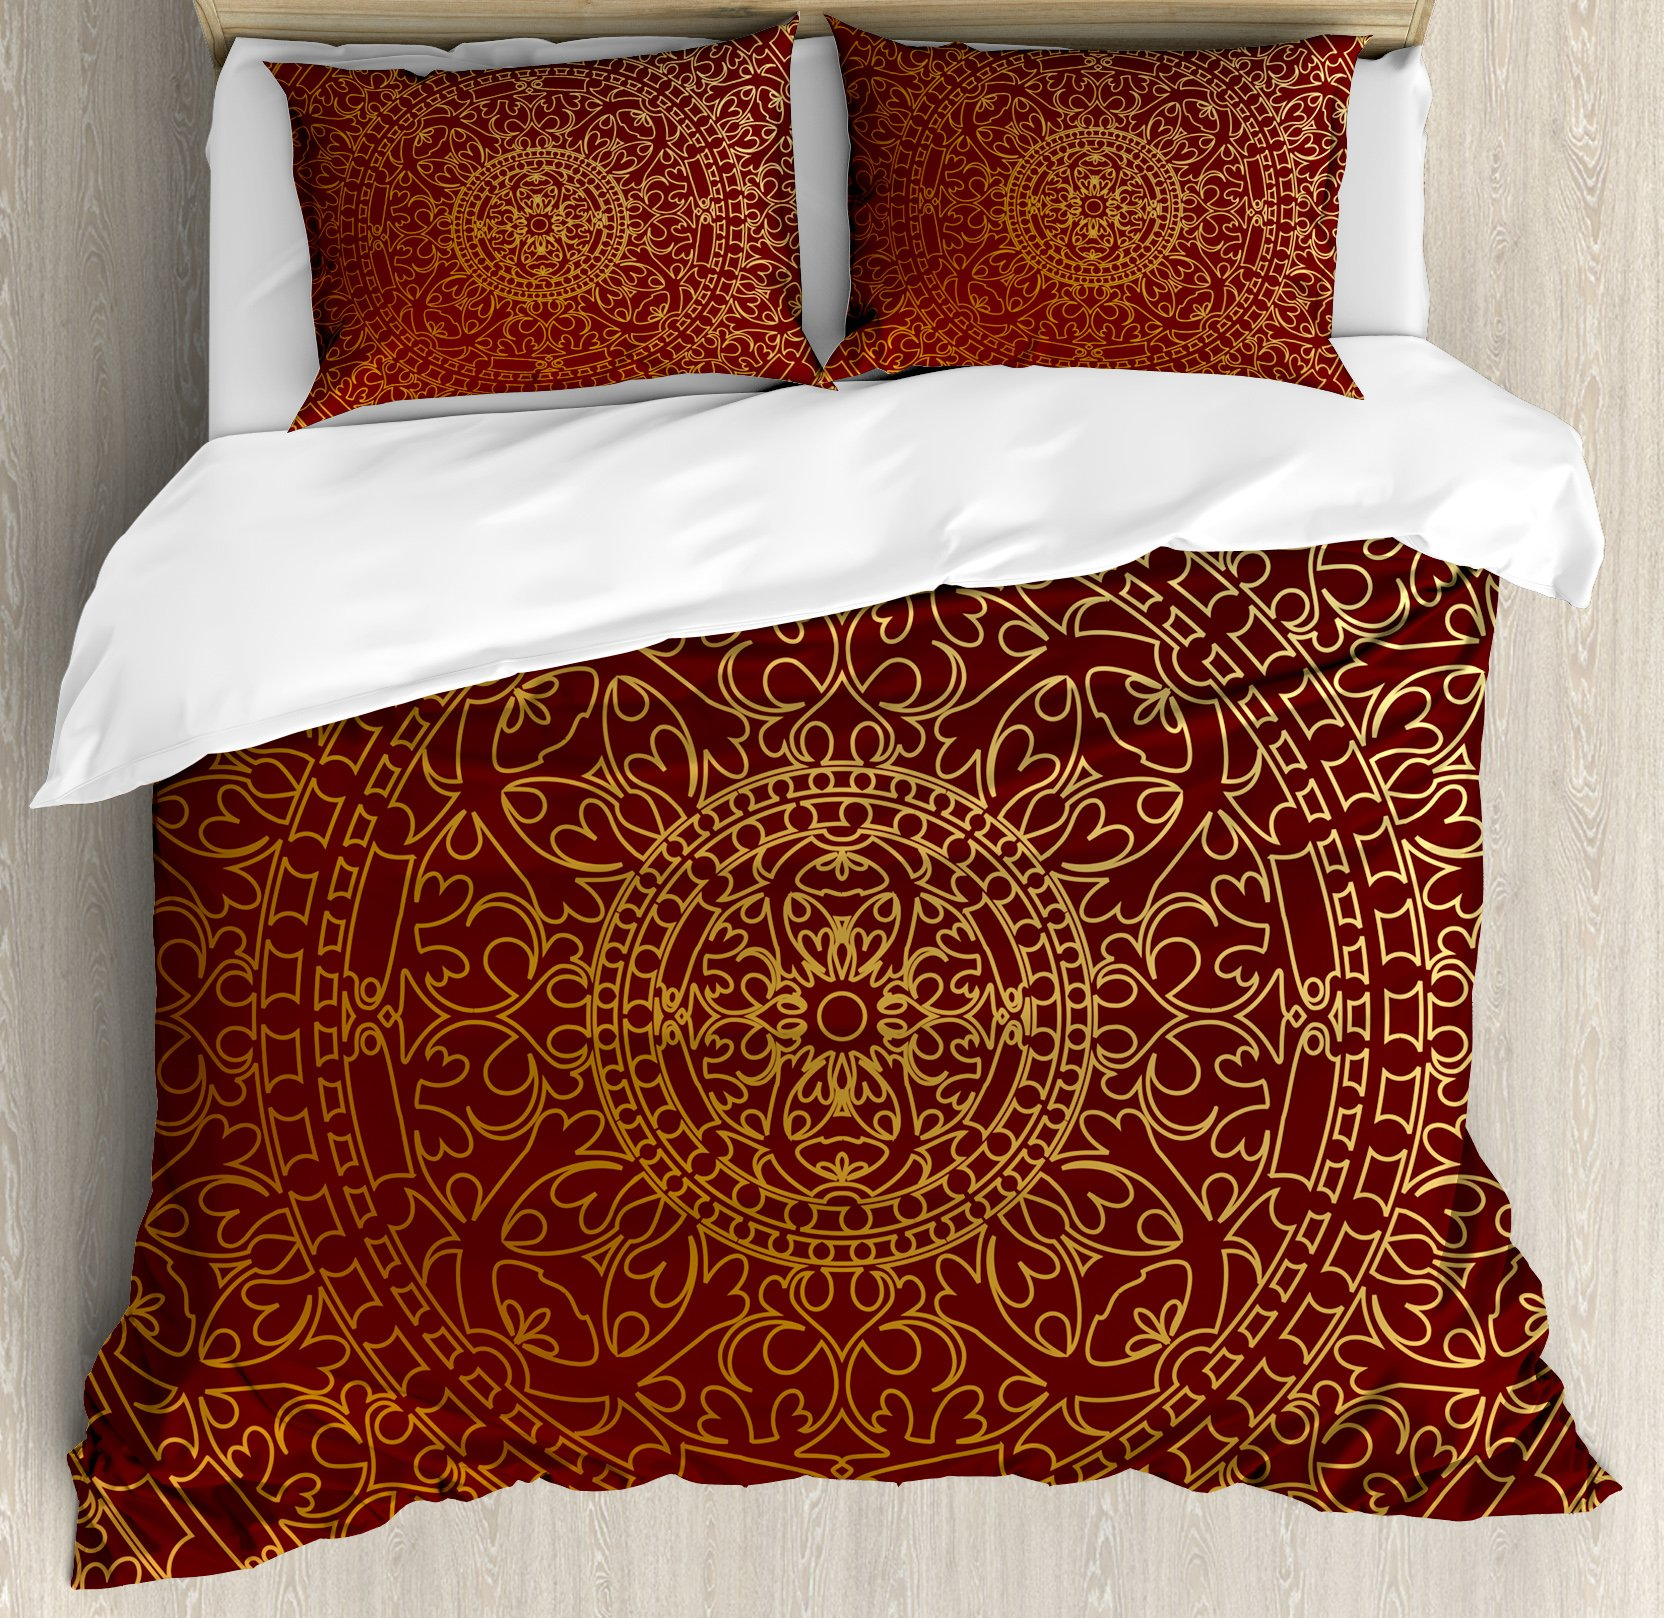 Maroon King Size Duvet Cover Set by Ambesonne, Antique Arabic Artwork Oriental Mandala Inspired Round Ornament Moroccan Ethnic, Decorative 3 Piece Bedding Set with 2 Pillow Shams, Gold Maroon